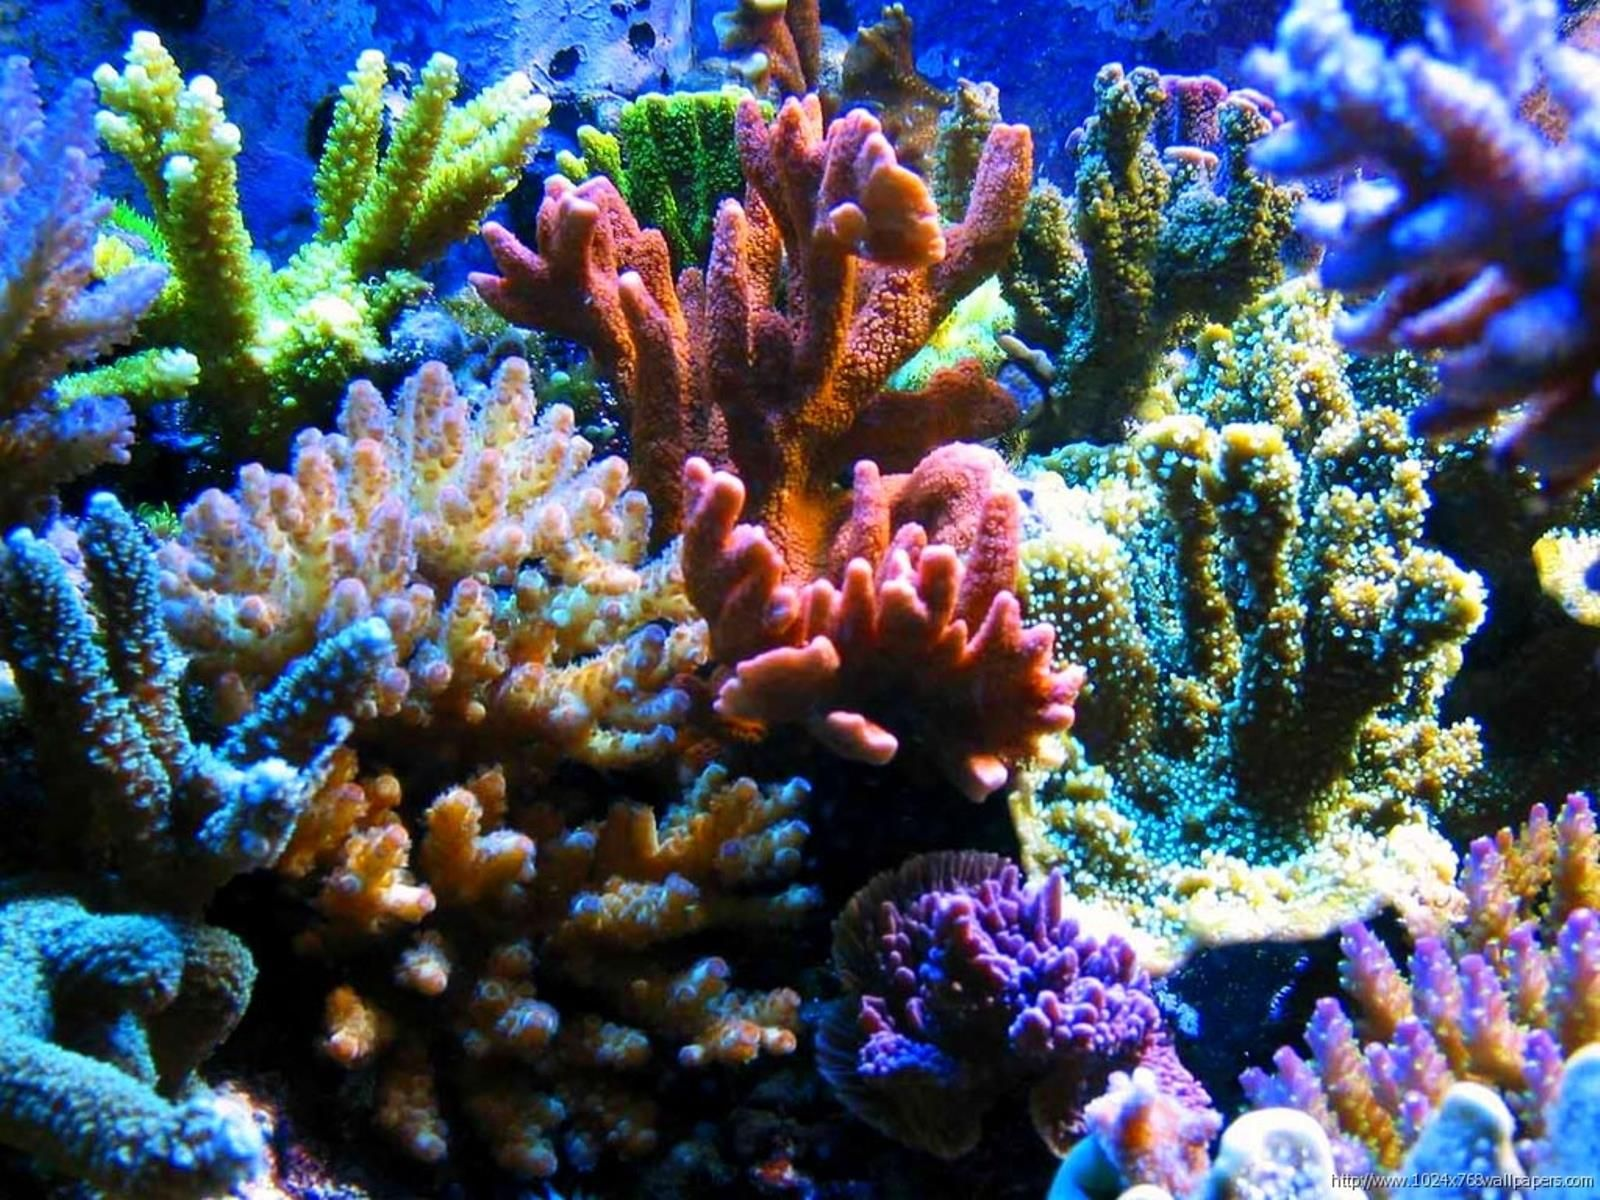 Pin By Ves Bcn On Photograpy In 2020 Coral Reef Pictures Coral Pictures Underwater World